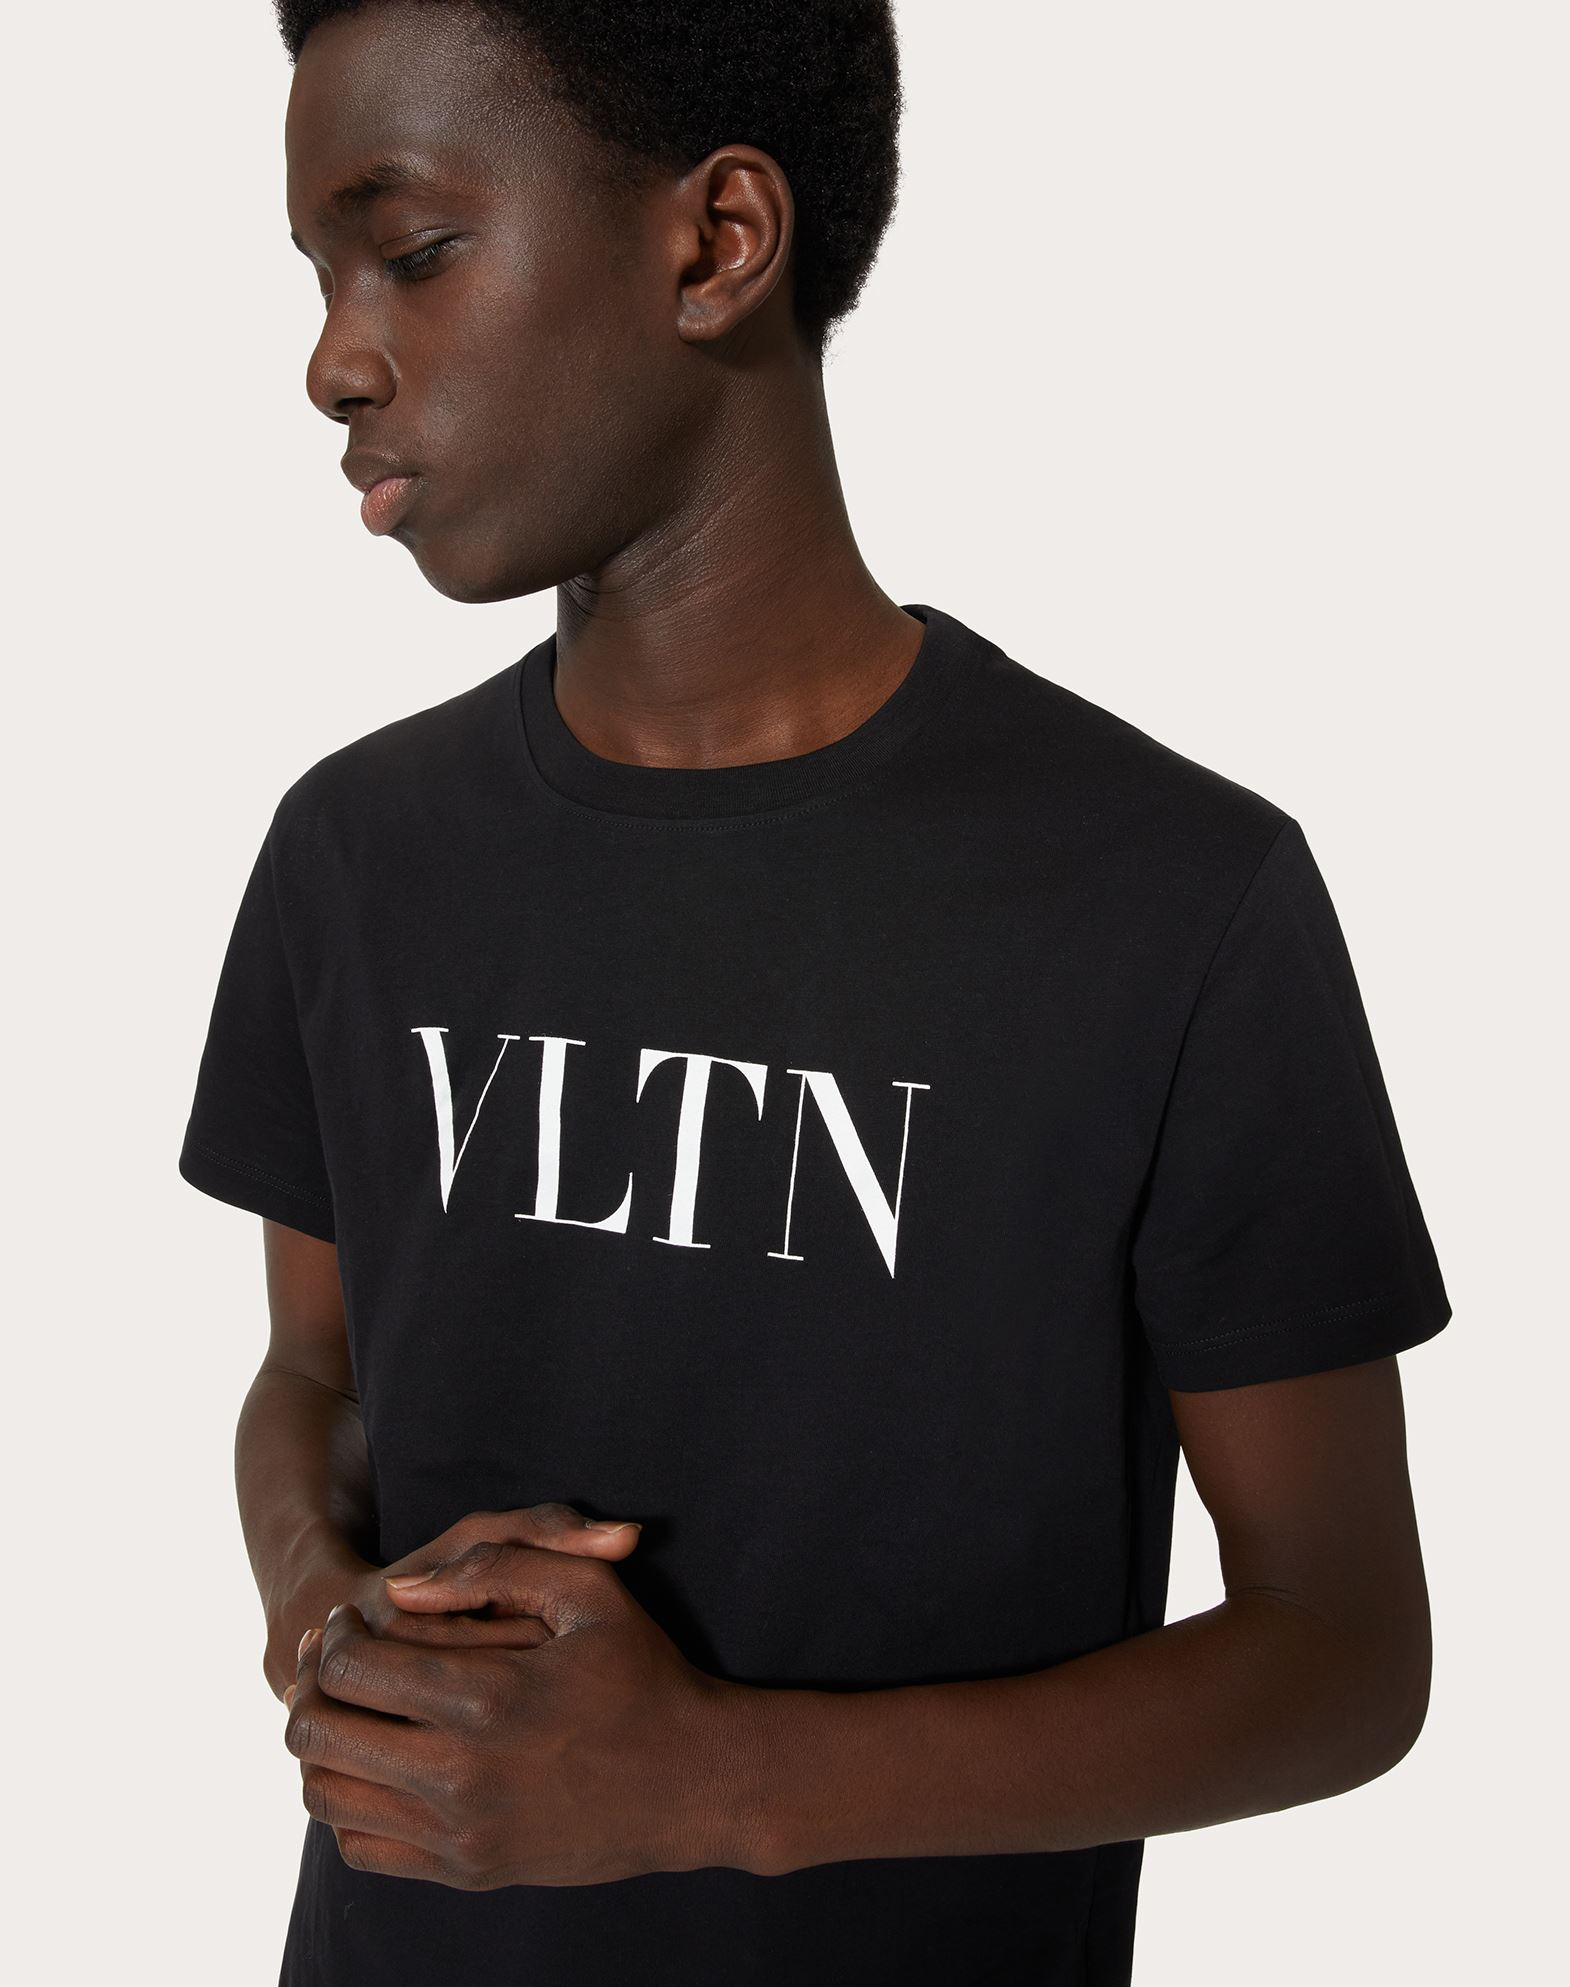 Valentino vlnt print cotton jersey t shirt in black modesens for T shirt printing in nj